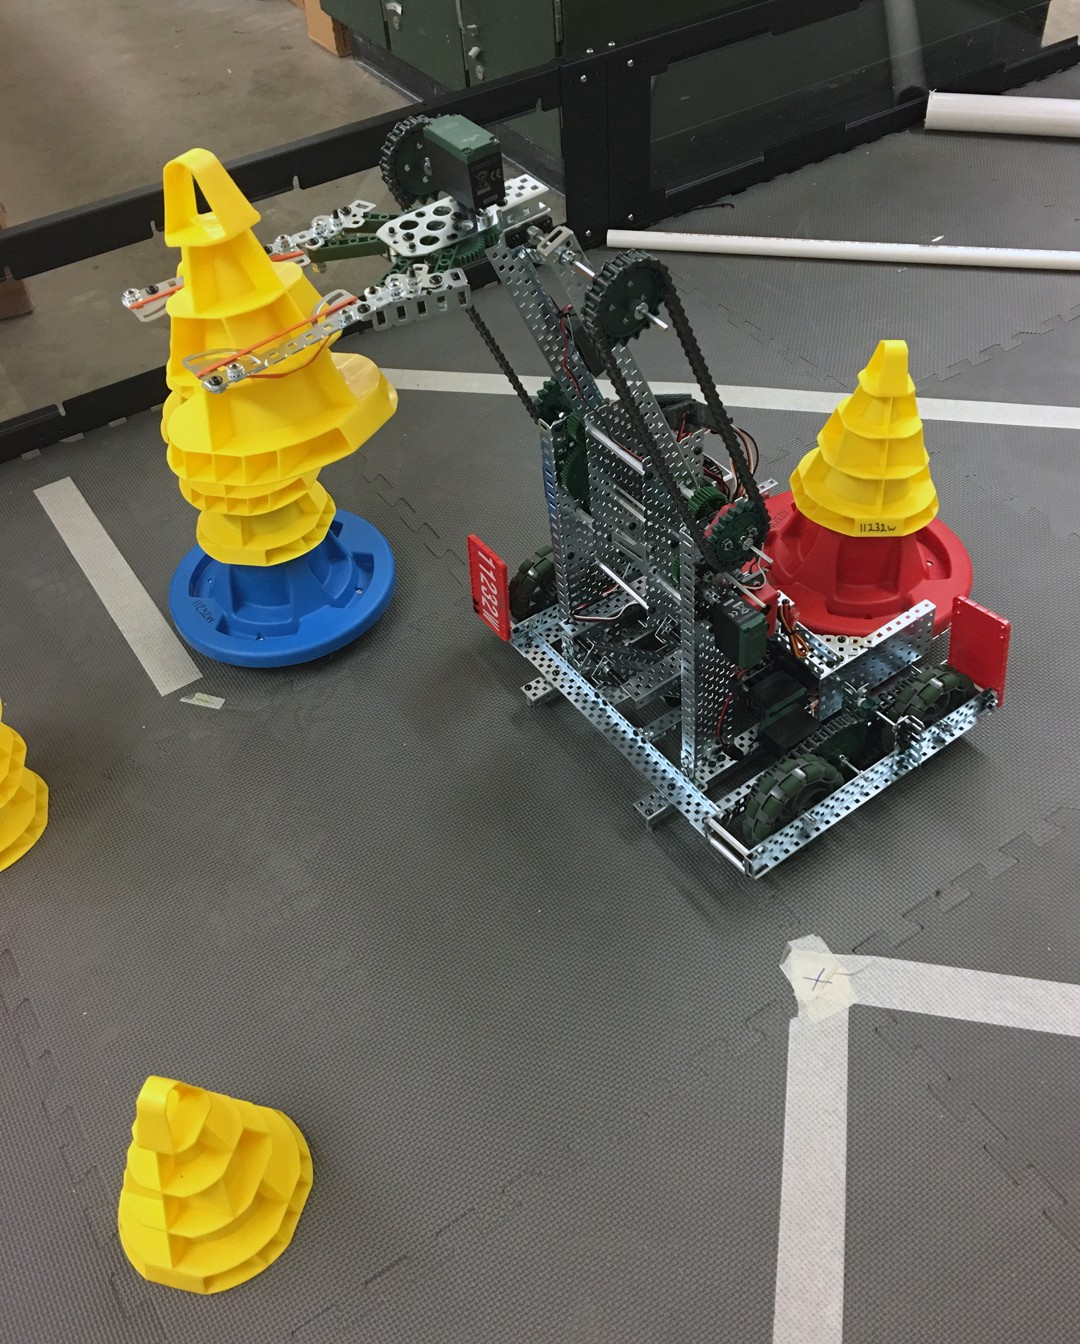 Wths Engineering And Robotics Club Competes In Vex Robotics Competition